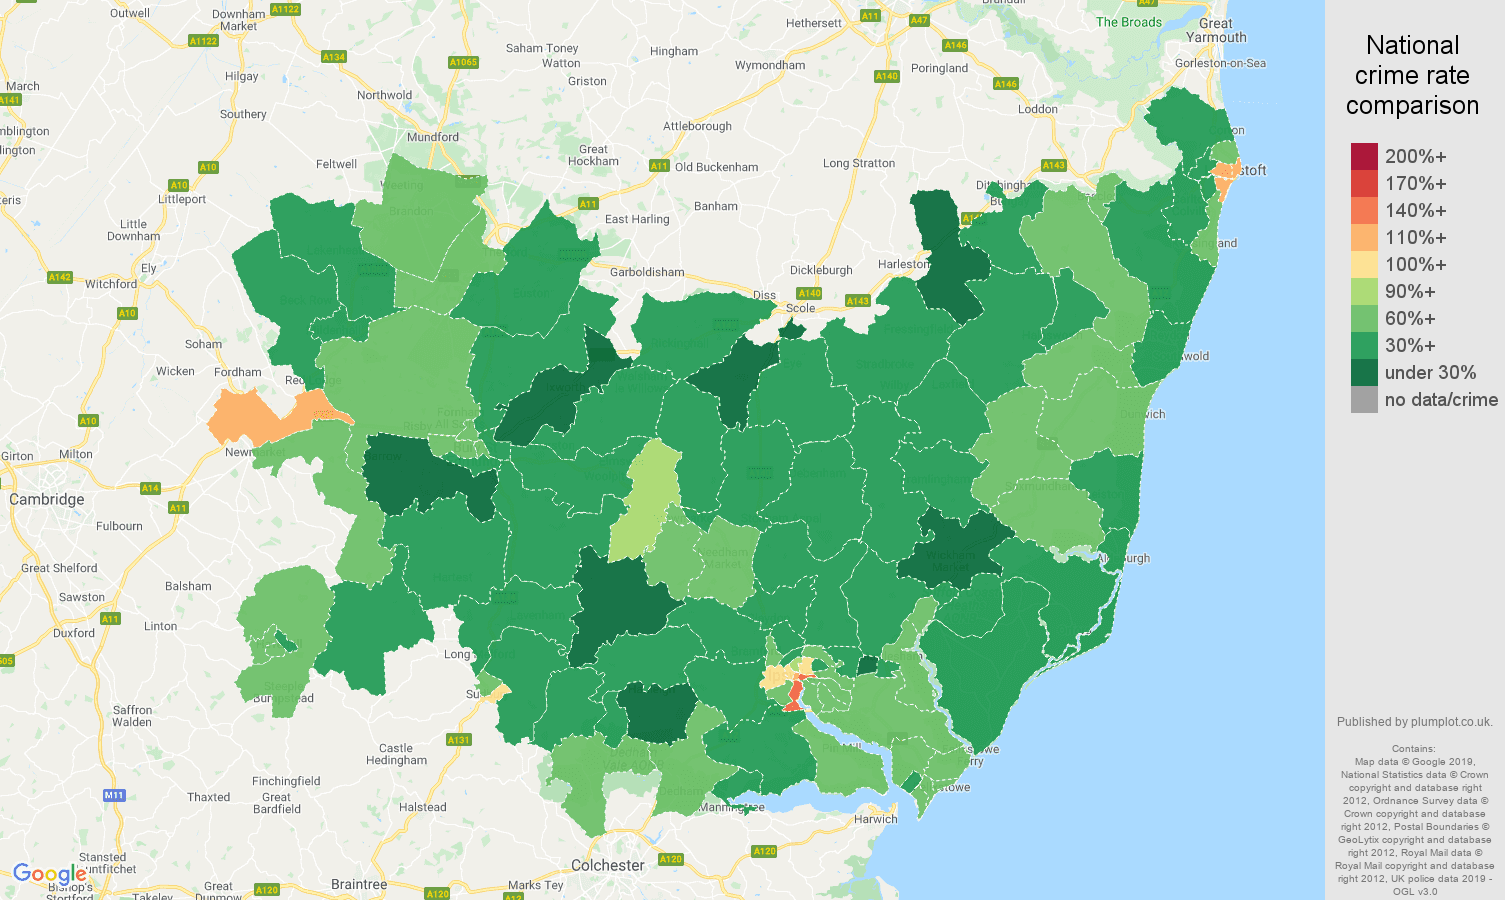 Suffolk other theft crime rate comparison map